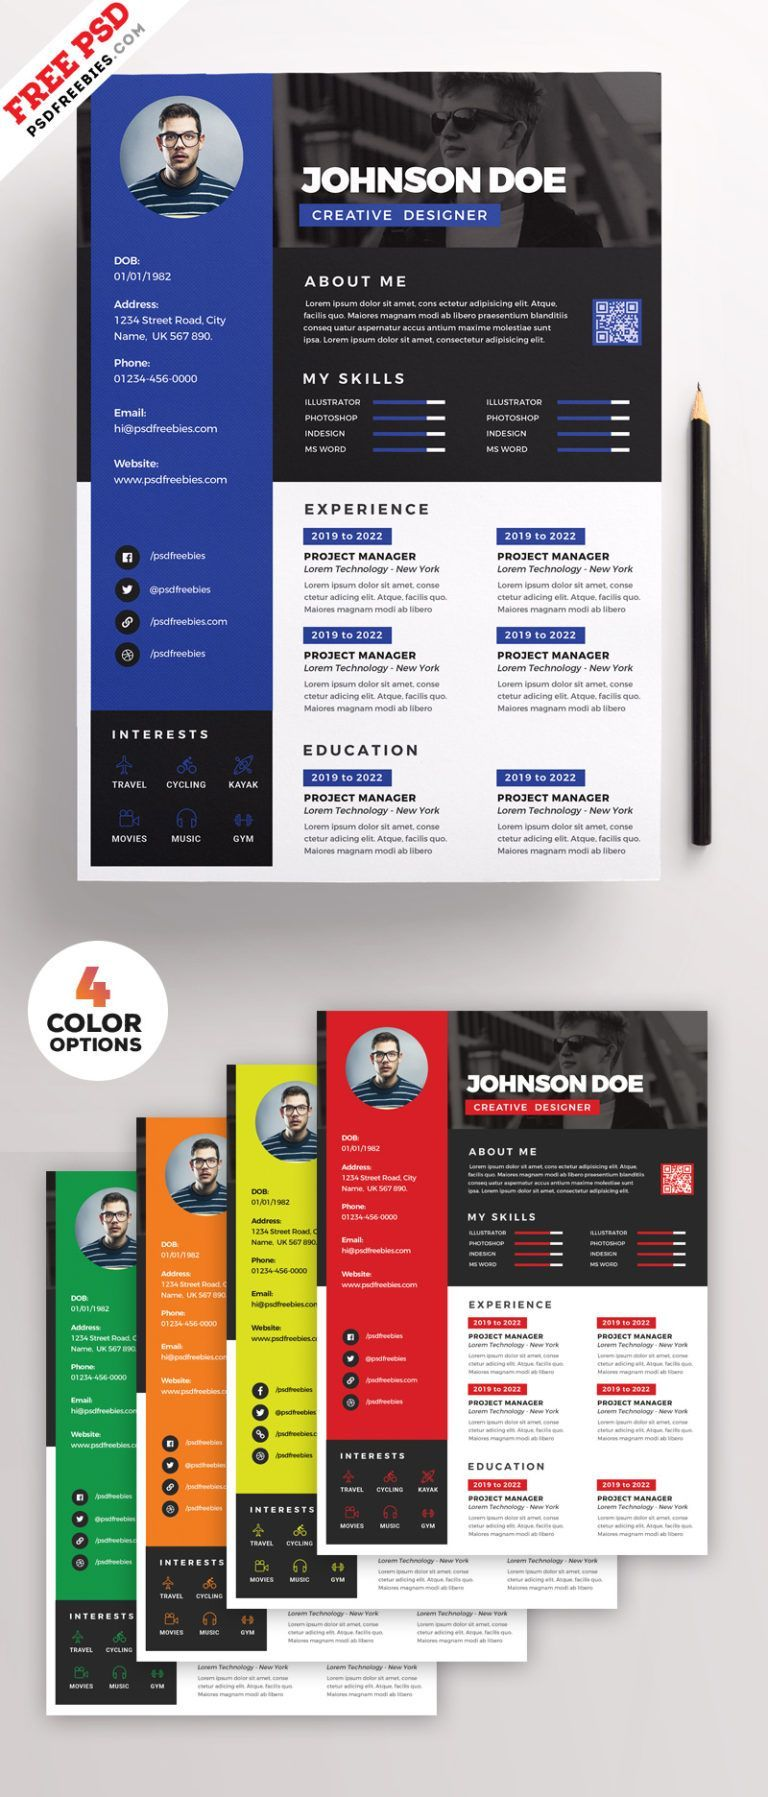 Resume design professional Awesome Resume CV Design PSD